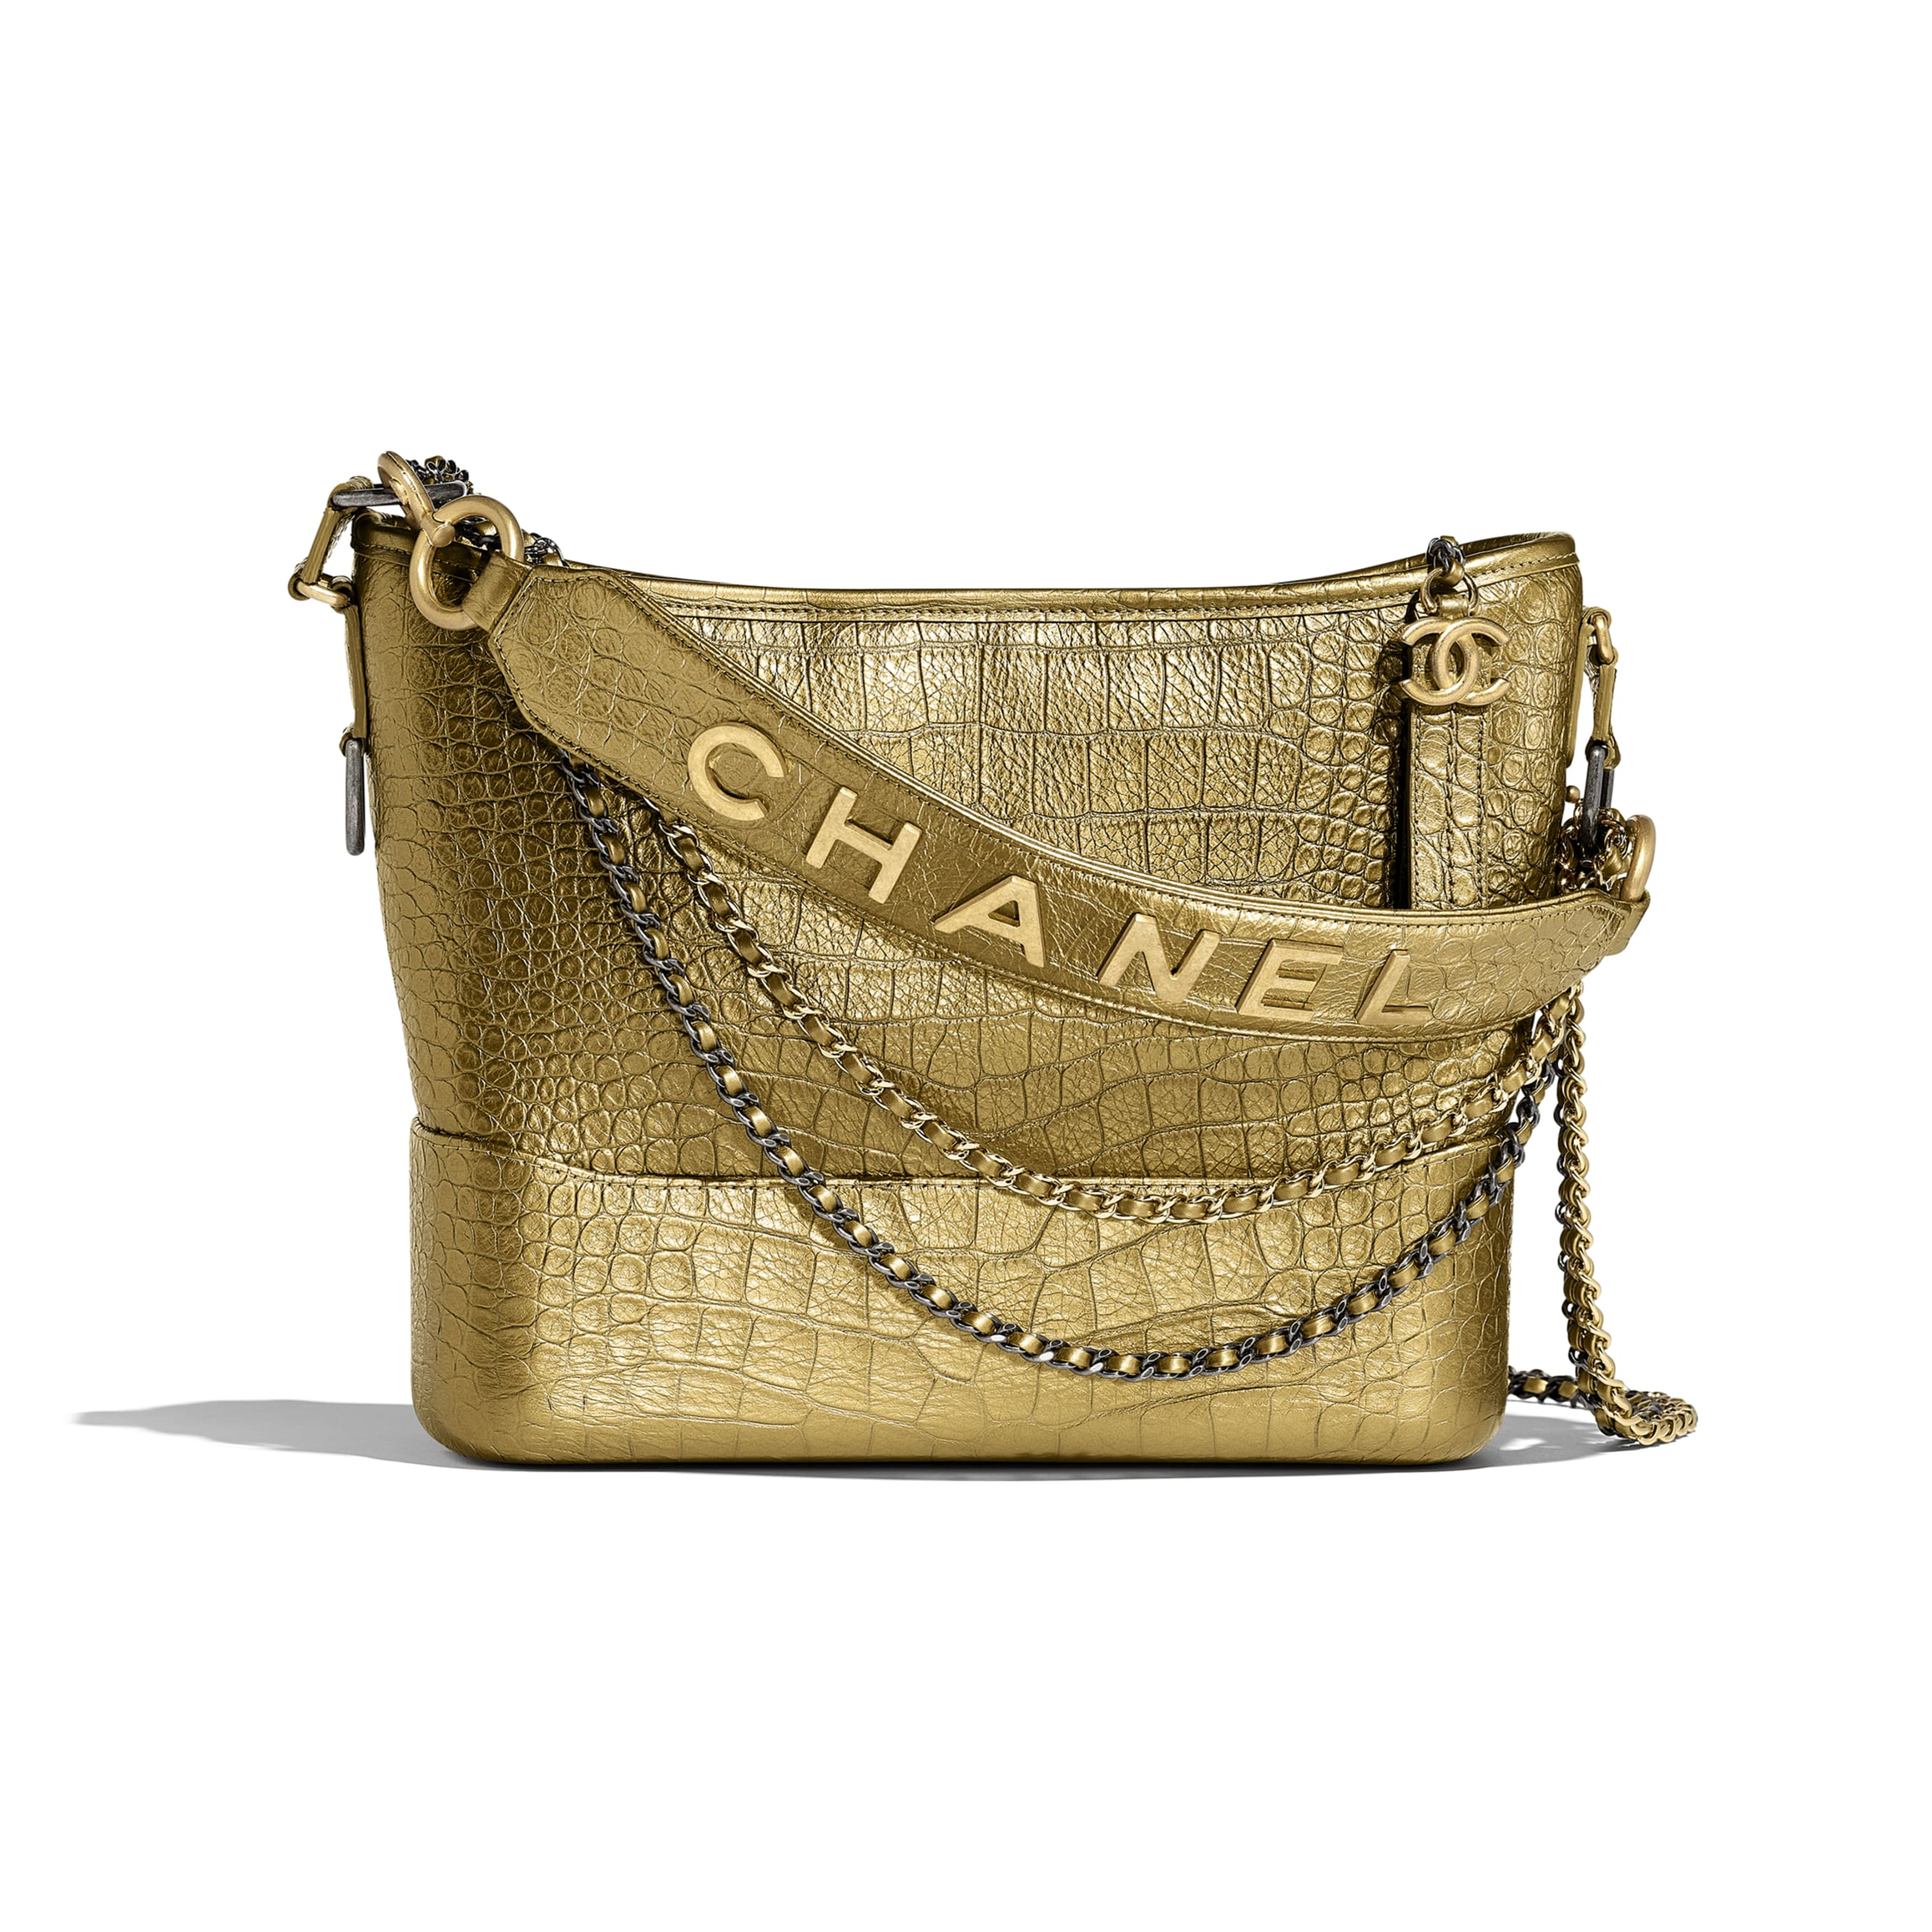 CHANEL'S GABRIELLE Hobo Bag - Gold - Metallic Crocodile Embossed Calfskin, Gold-Tone & Silver-Tone Metal - Default view - see standard sized version